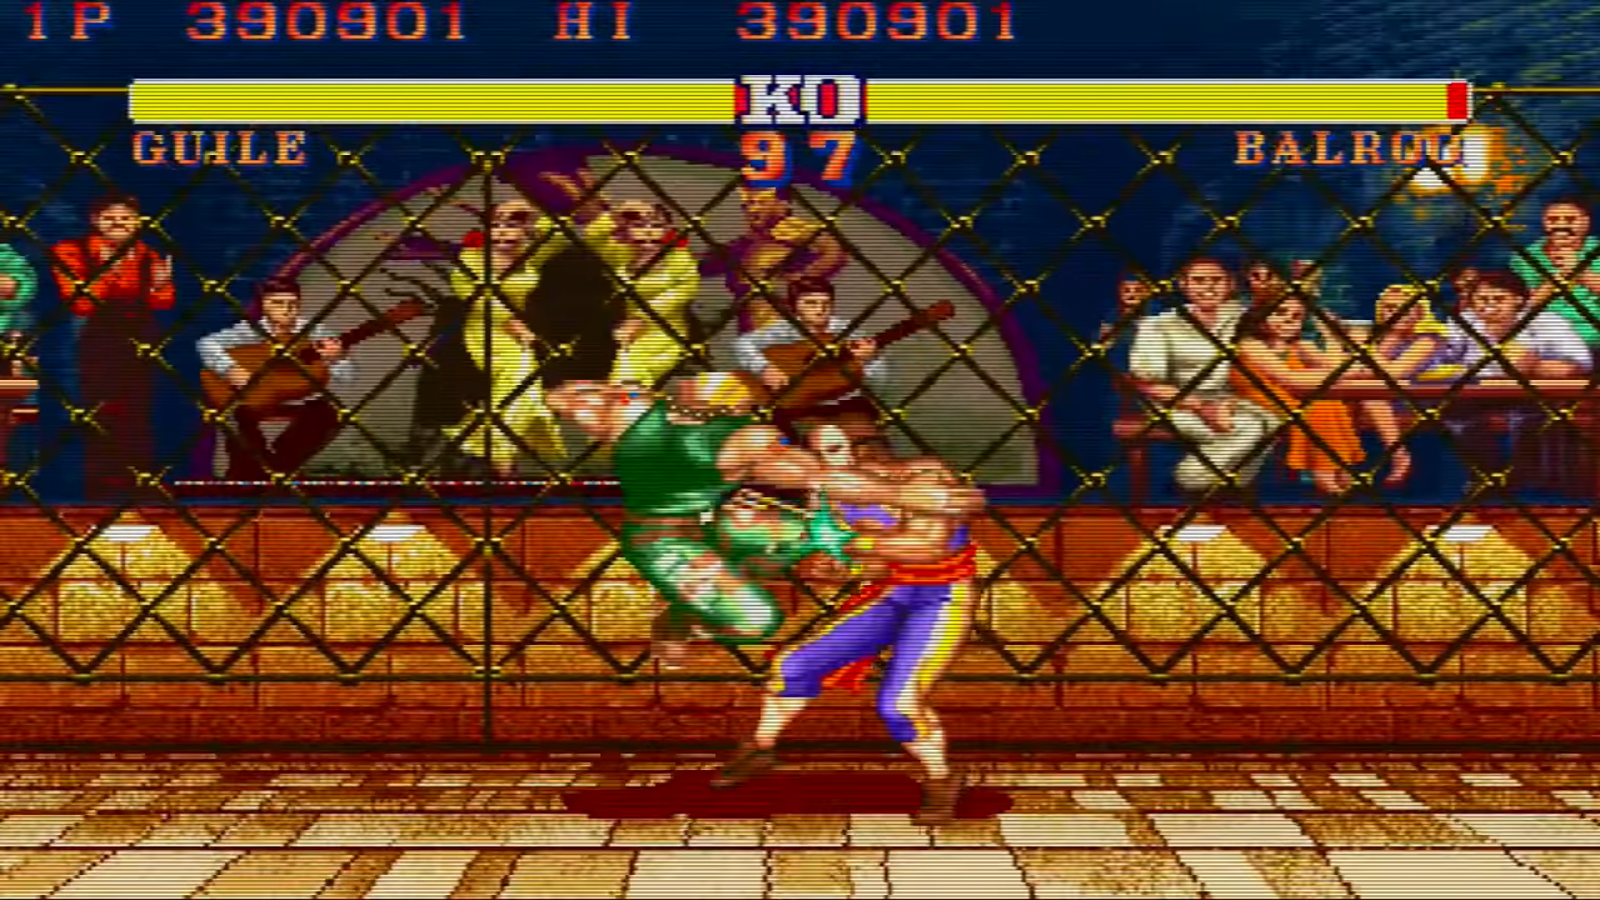 Street Fighter 2 Wizard Discovers New Combos 26 Years After Release